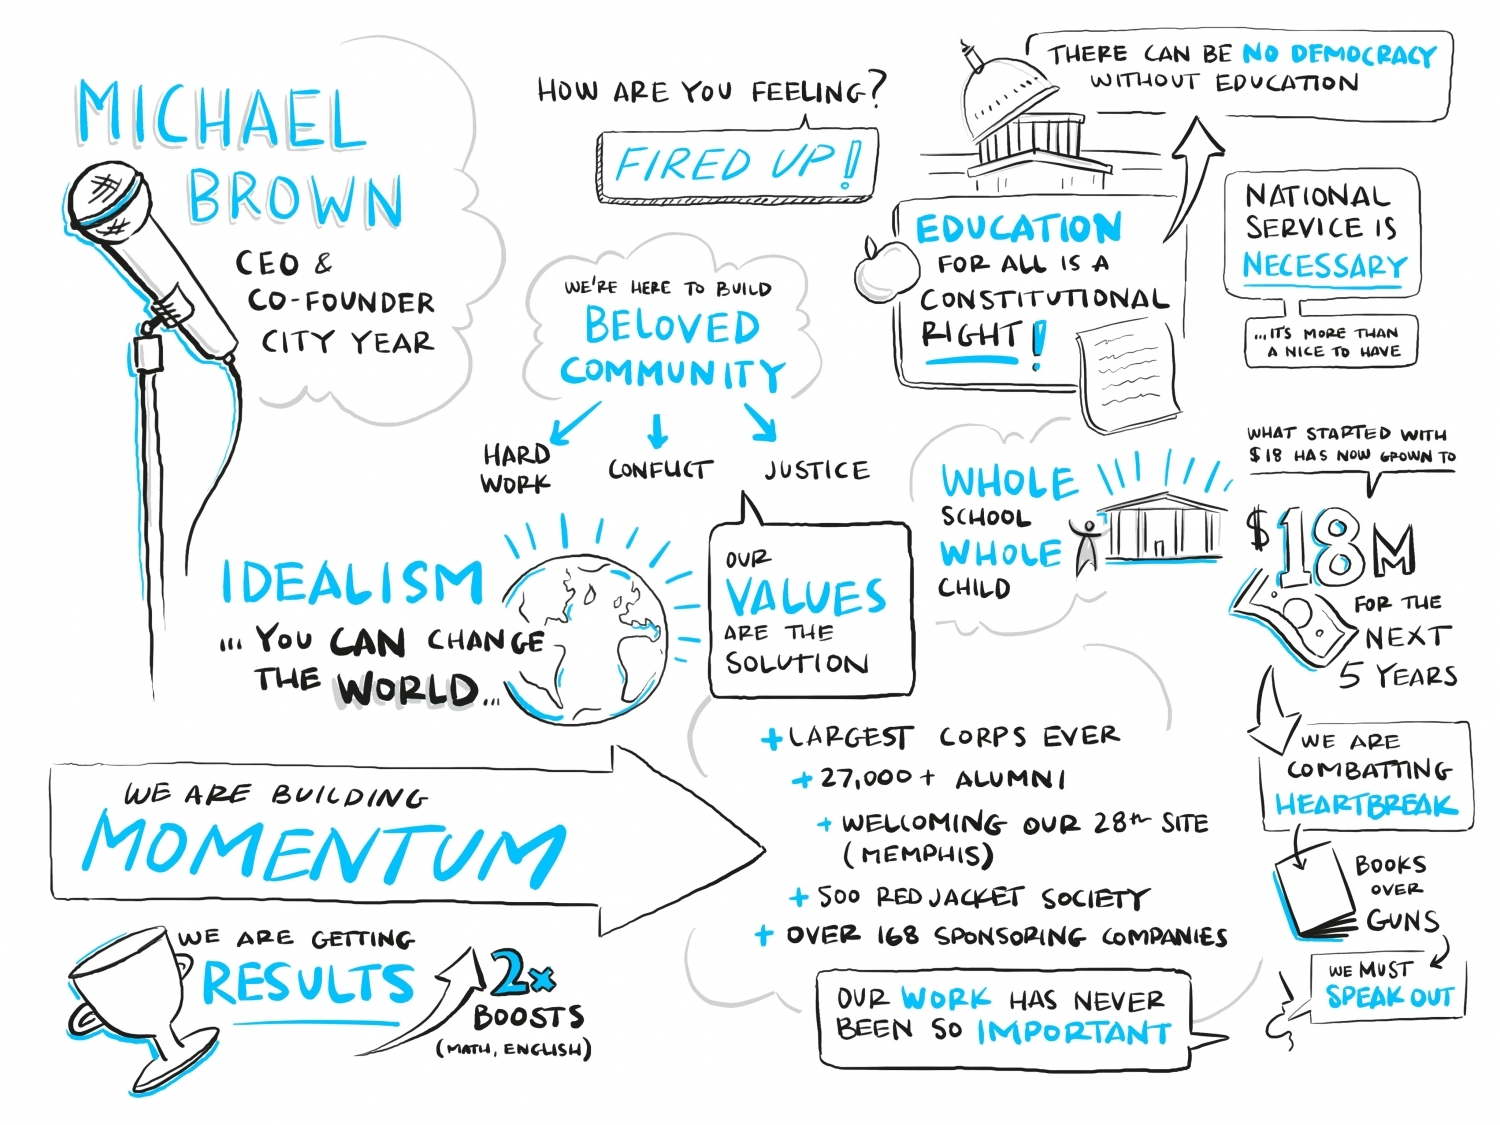 graphic facilitation design scribing conference leadership visualization storytelling thinking recording boston michael brown city year summer academy